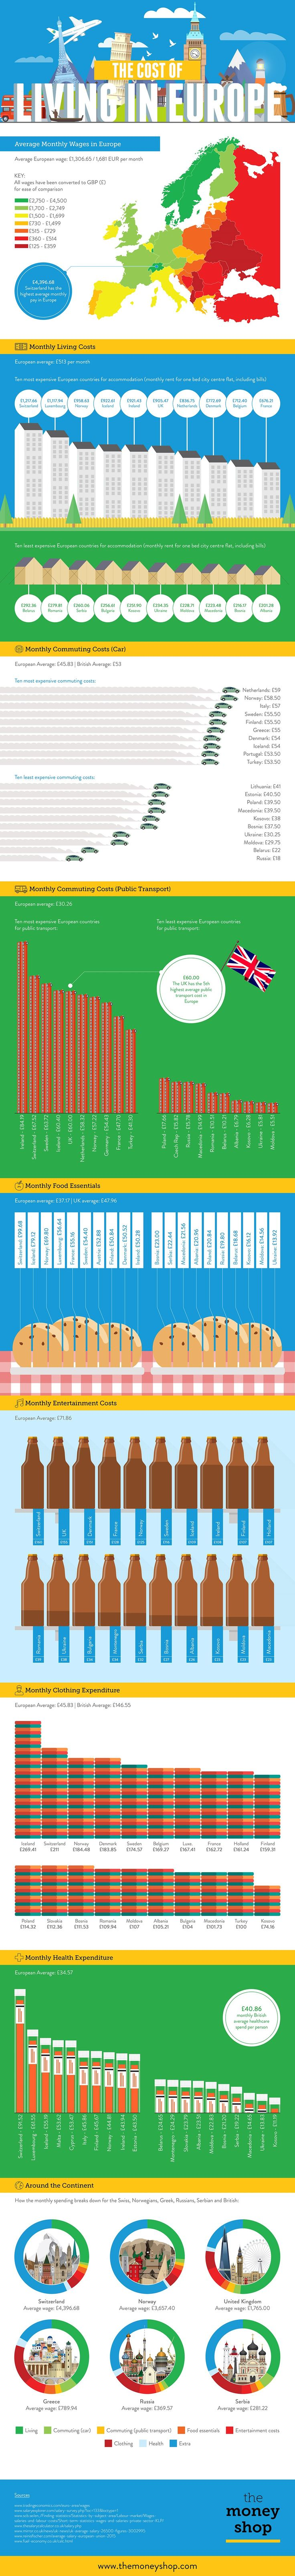 The Cost of Living In Europe #Infographic #Finance #Travel